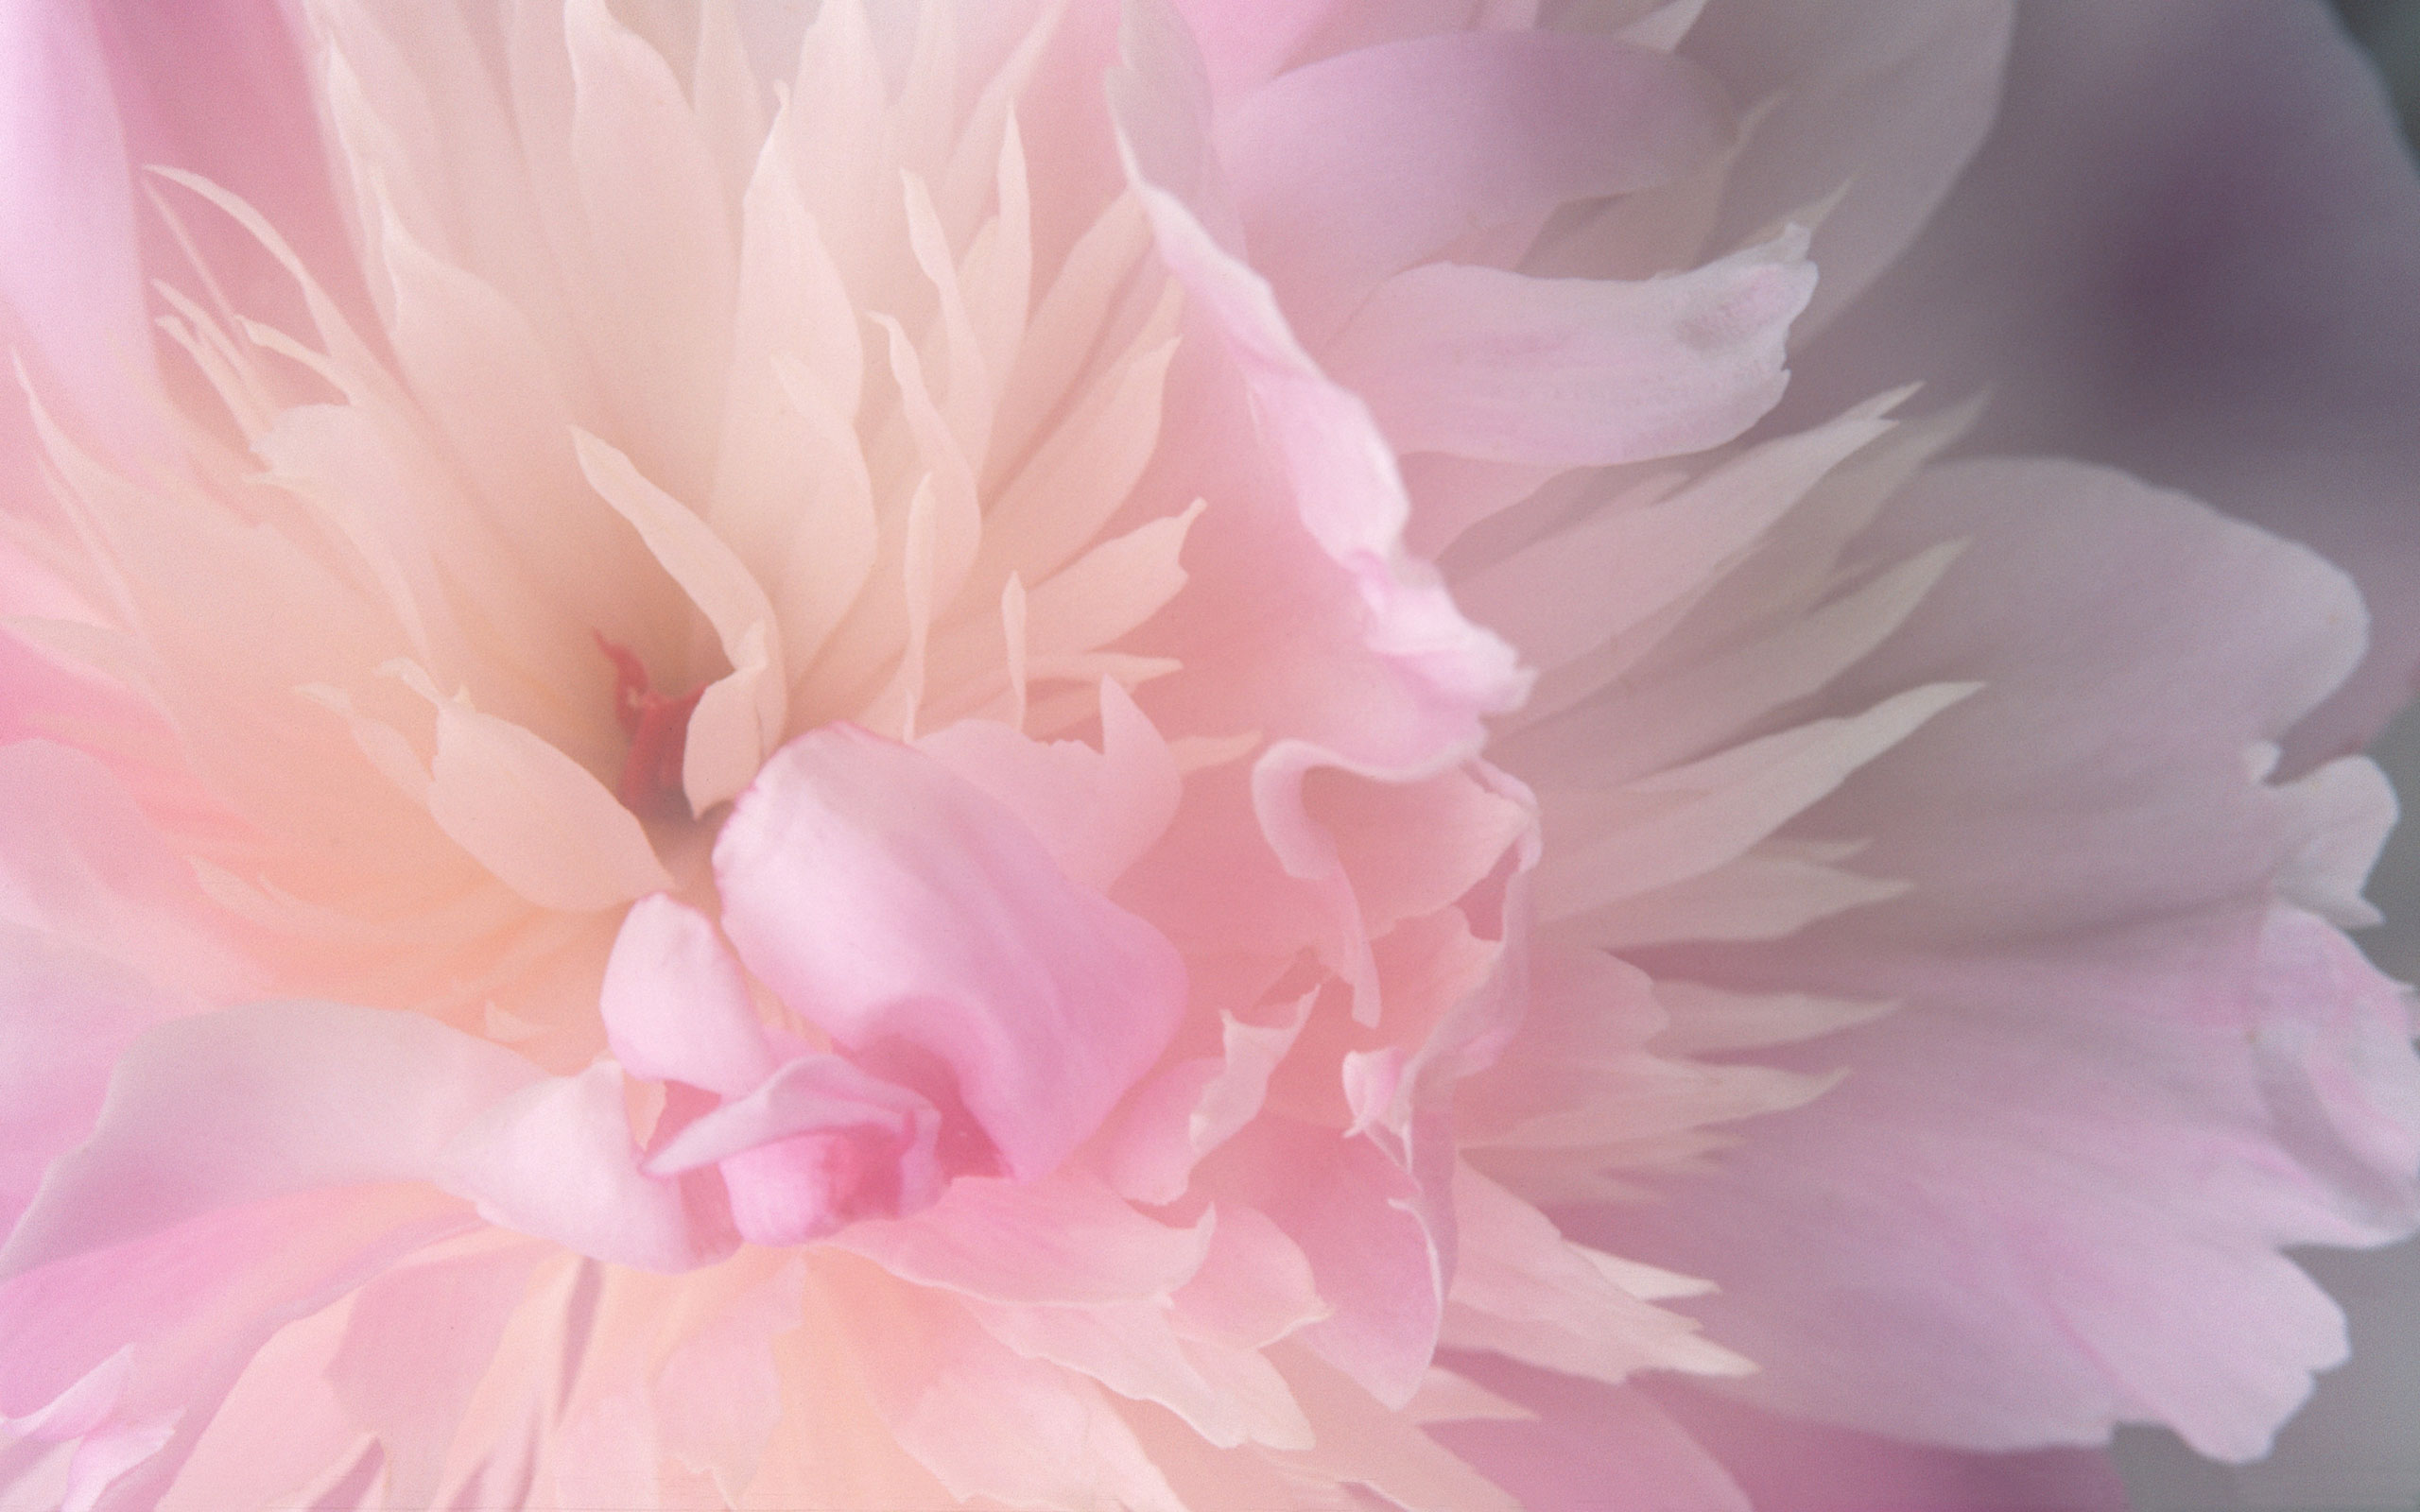 Fluffy pink flower - wallpaper on Mac OS x Tiger